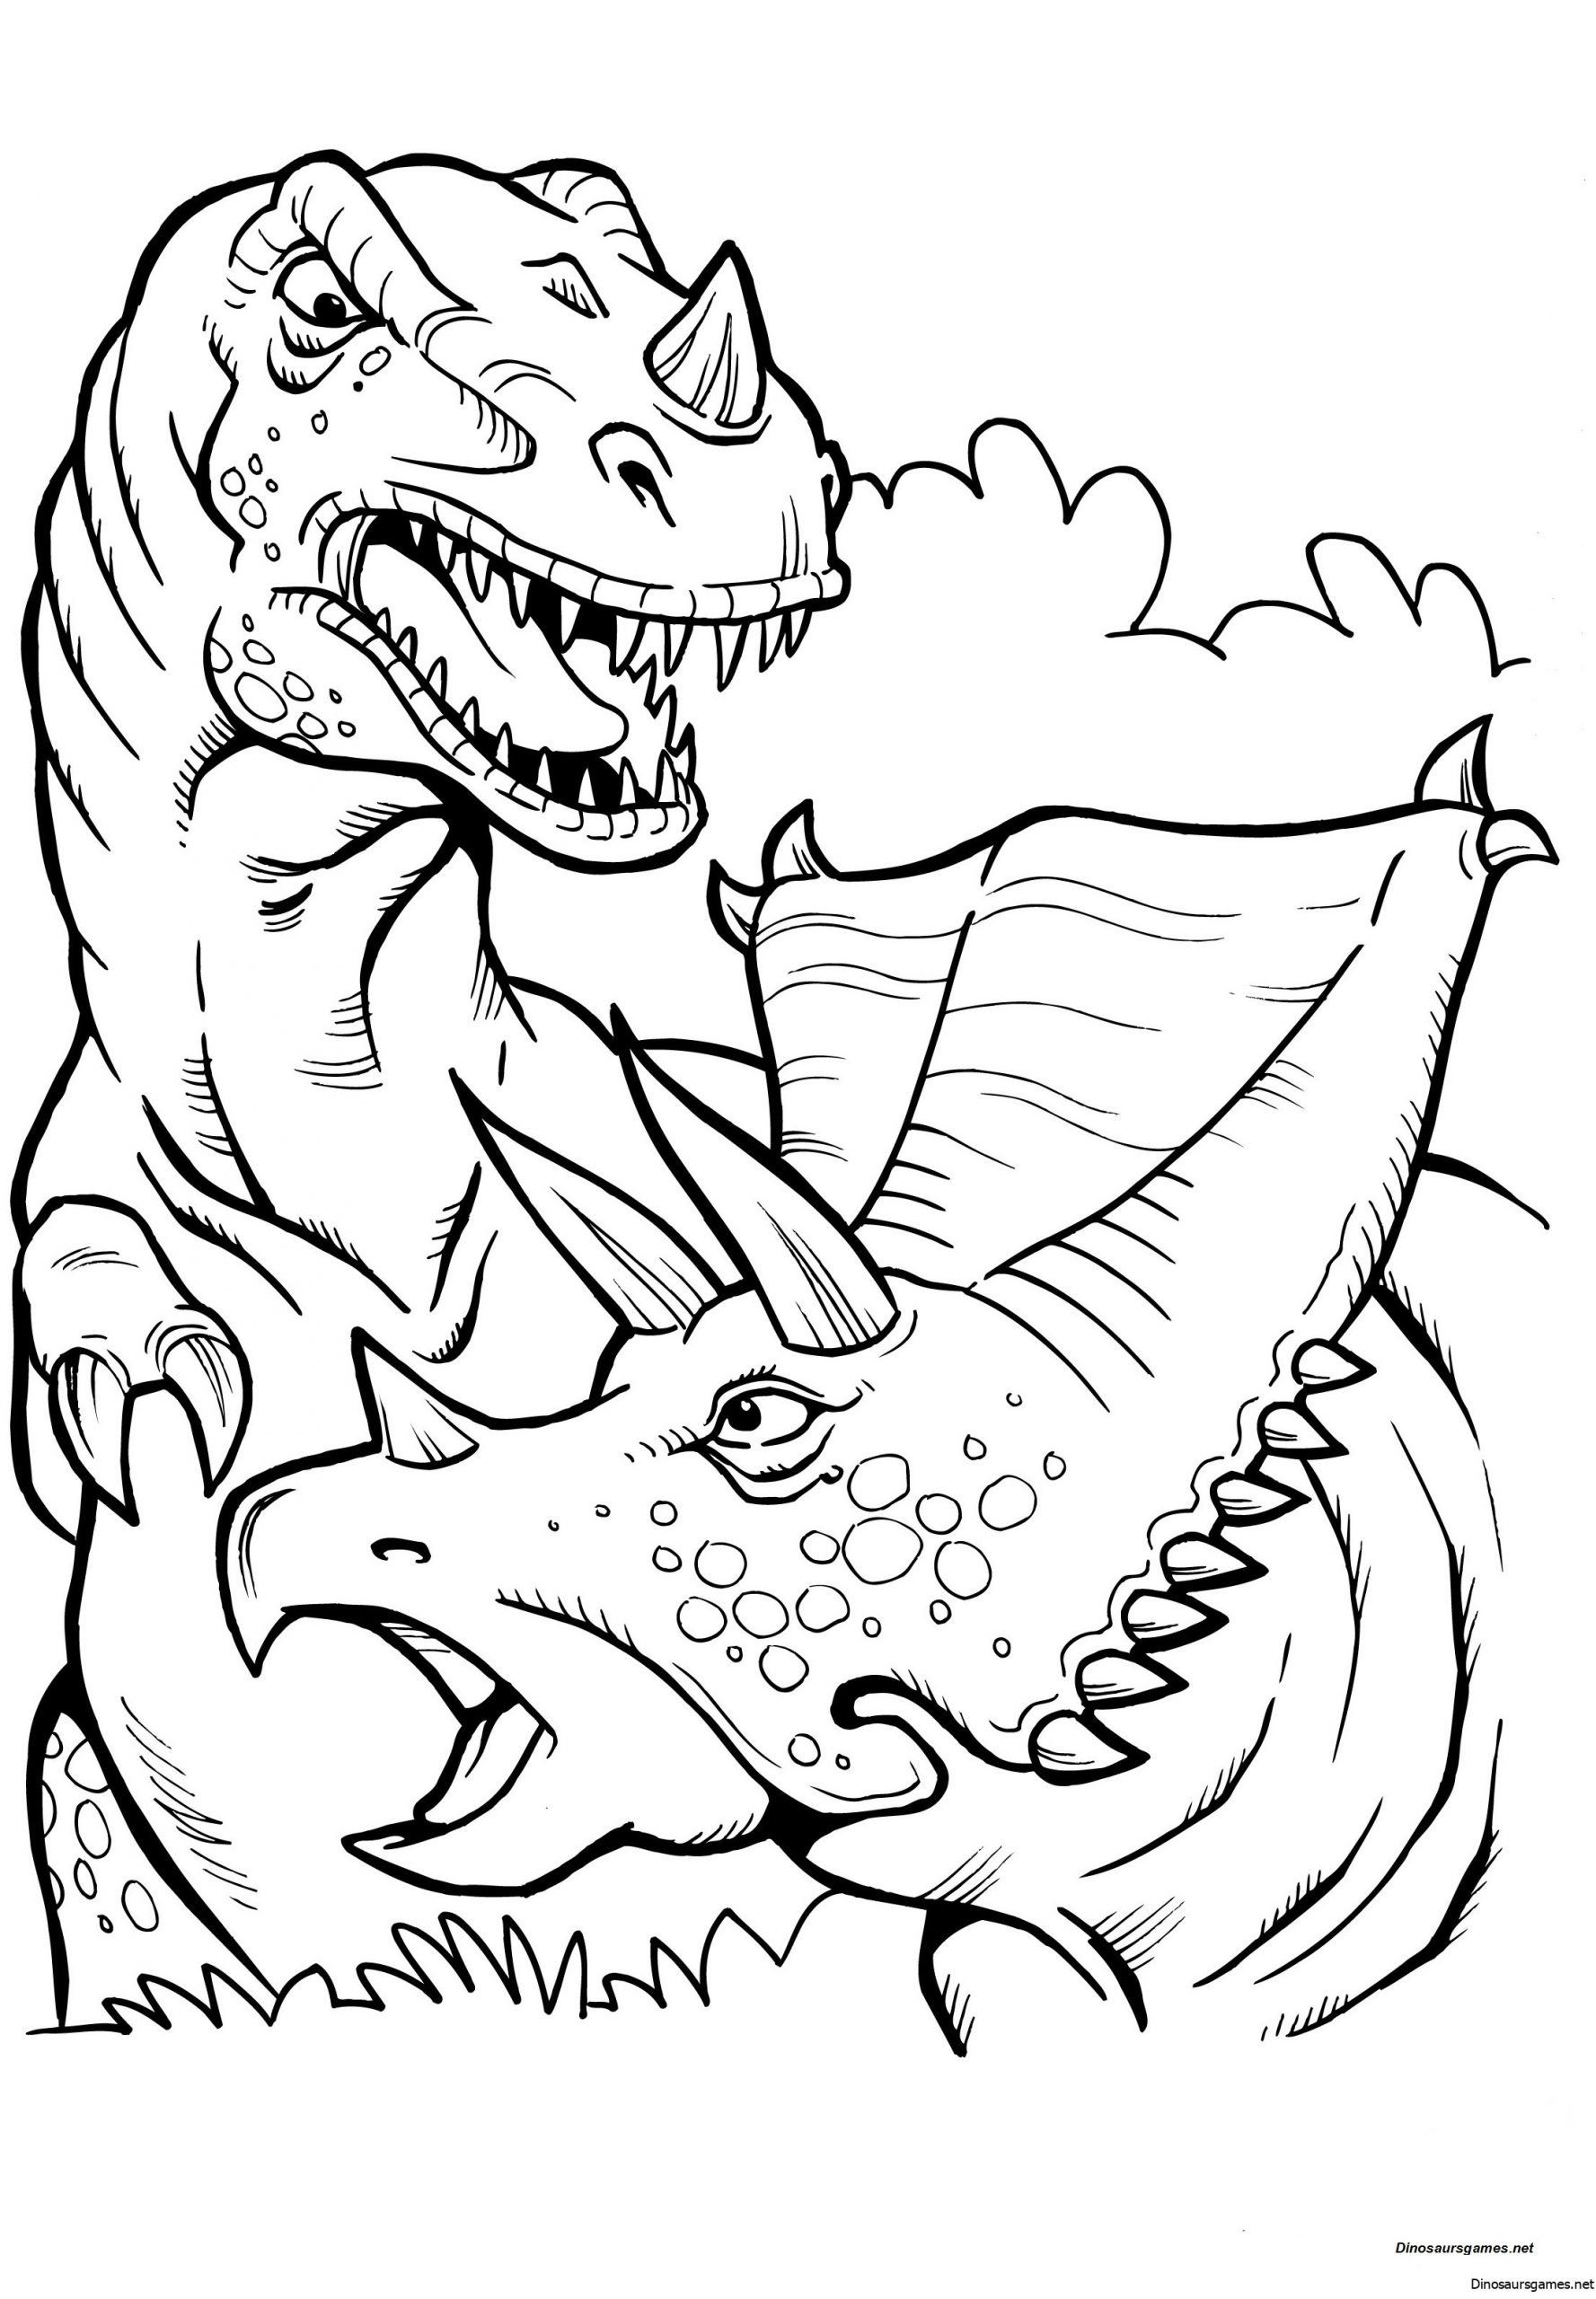 T Rex Coloring Sheets Battle T Rex Coloring Page Dinosaur Coloring Pages In 2020 Dinosaur Coloring Pages Dinosaur Coloring Sheets Dragon Coloring Page